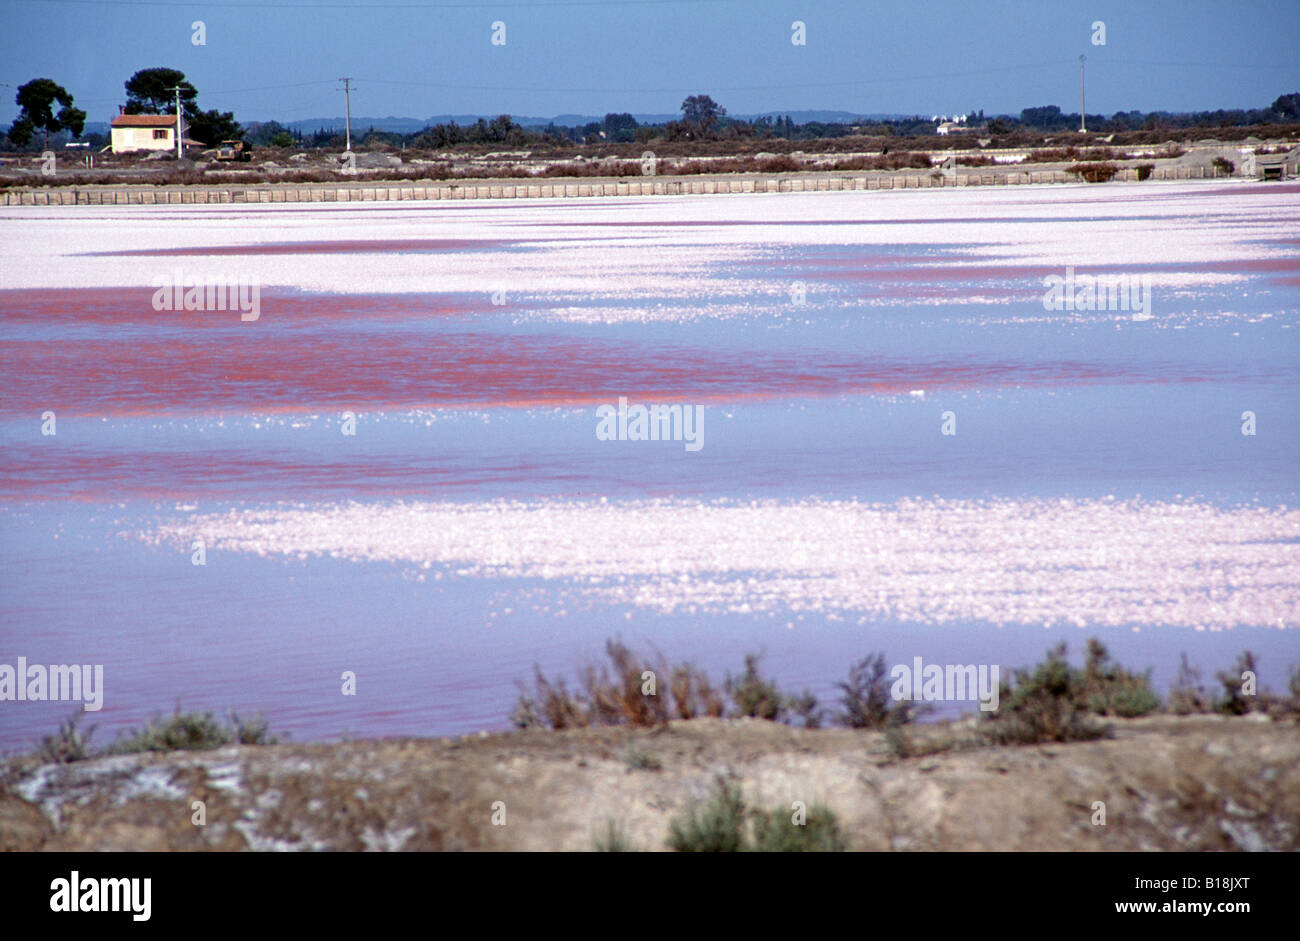 Salt flats at Les Salins, Aigues Mortes ,South of France tinged pink with micro organisms that are eaten by fish - Stock Image